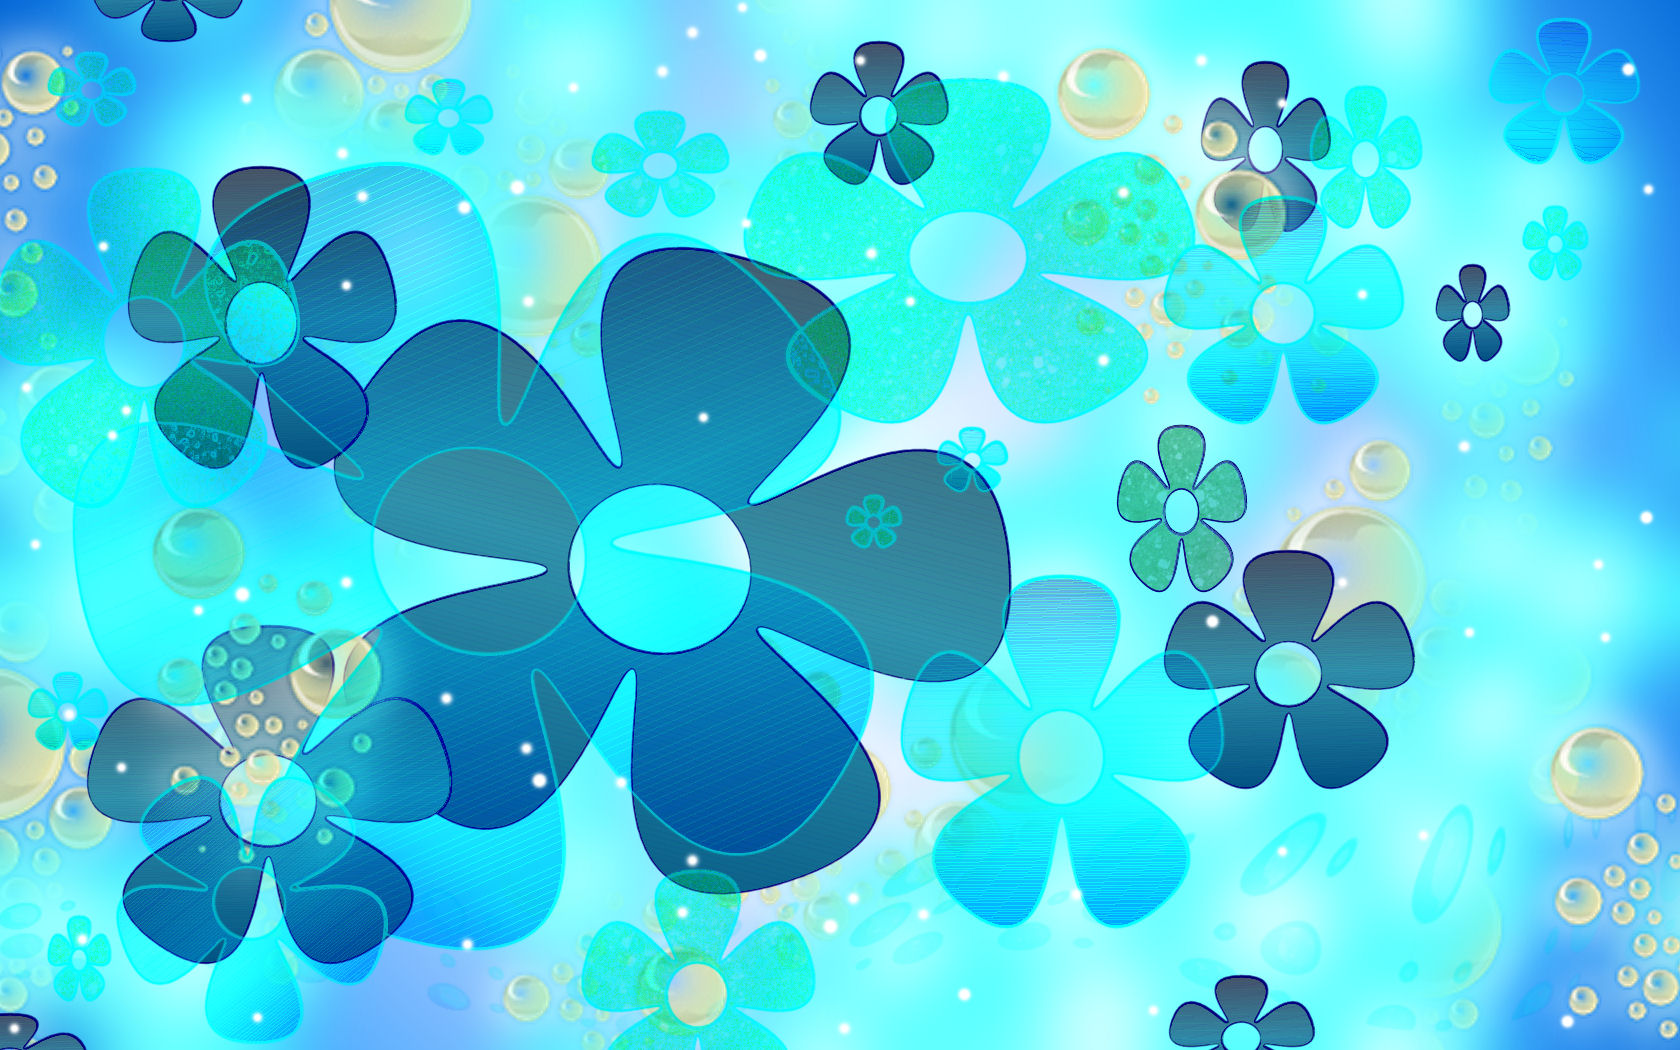 Sookie_Blue_Flower_Wallpaper_by_sookiesooker Wallpaper